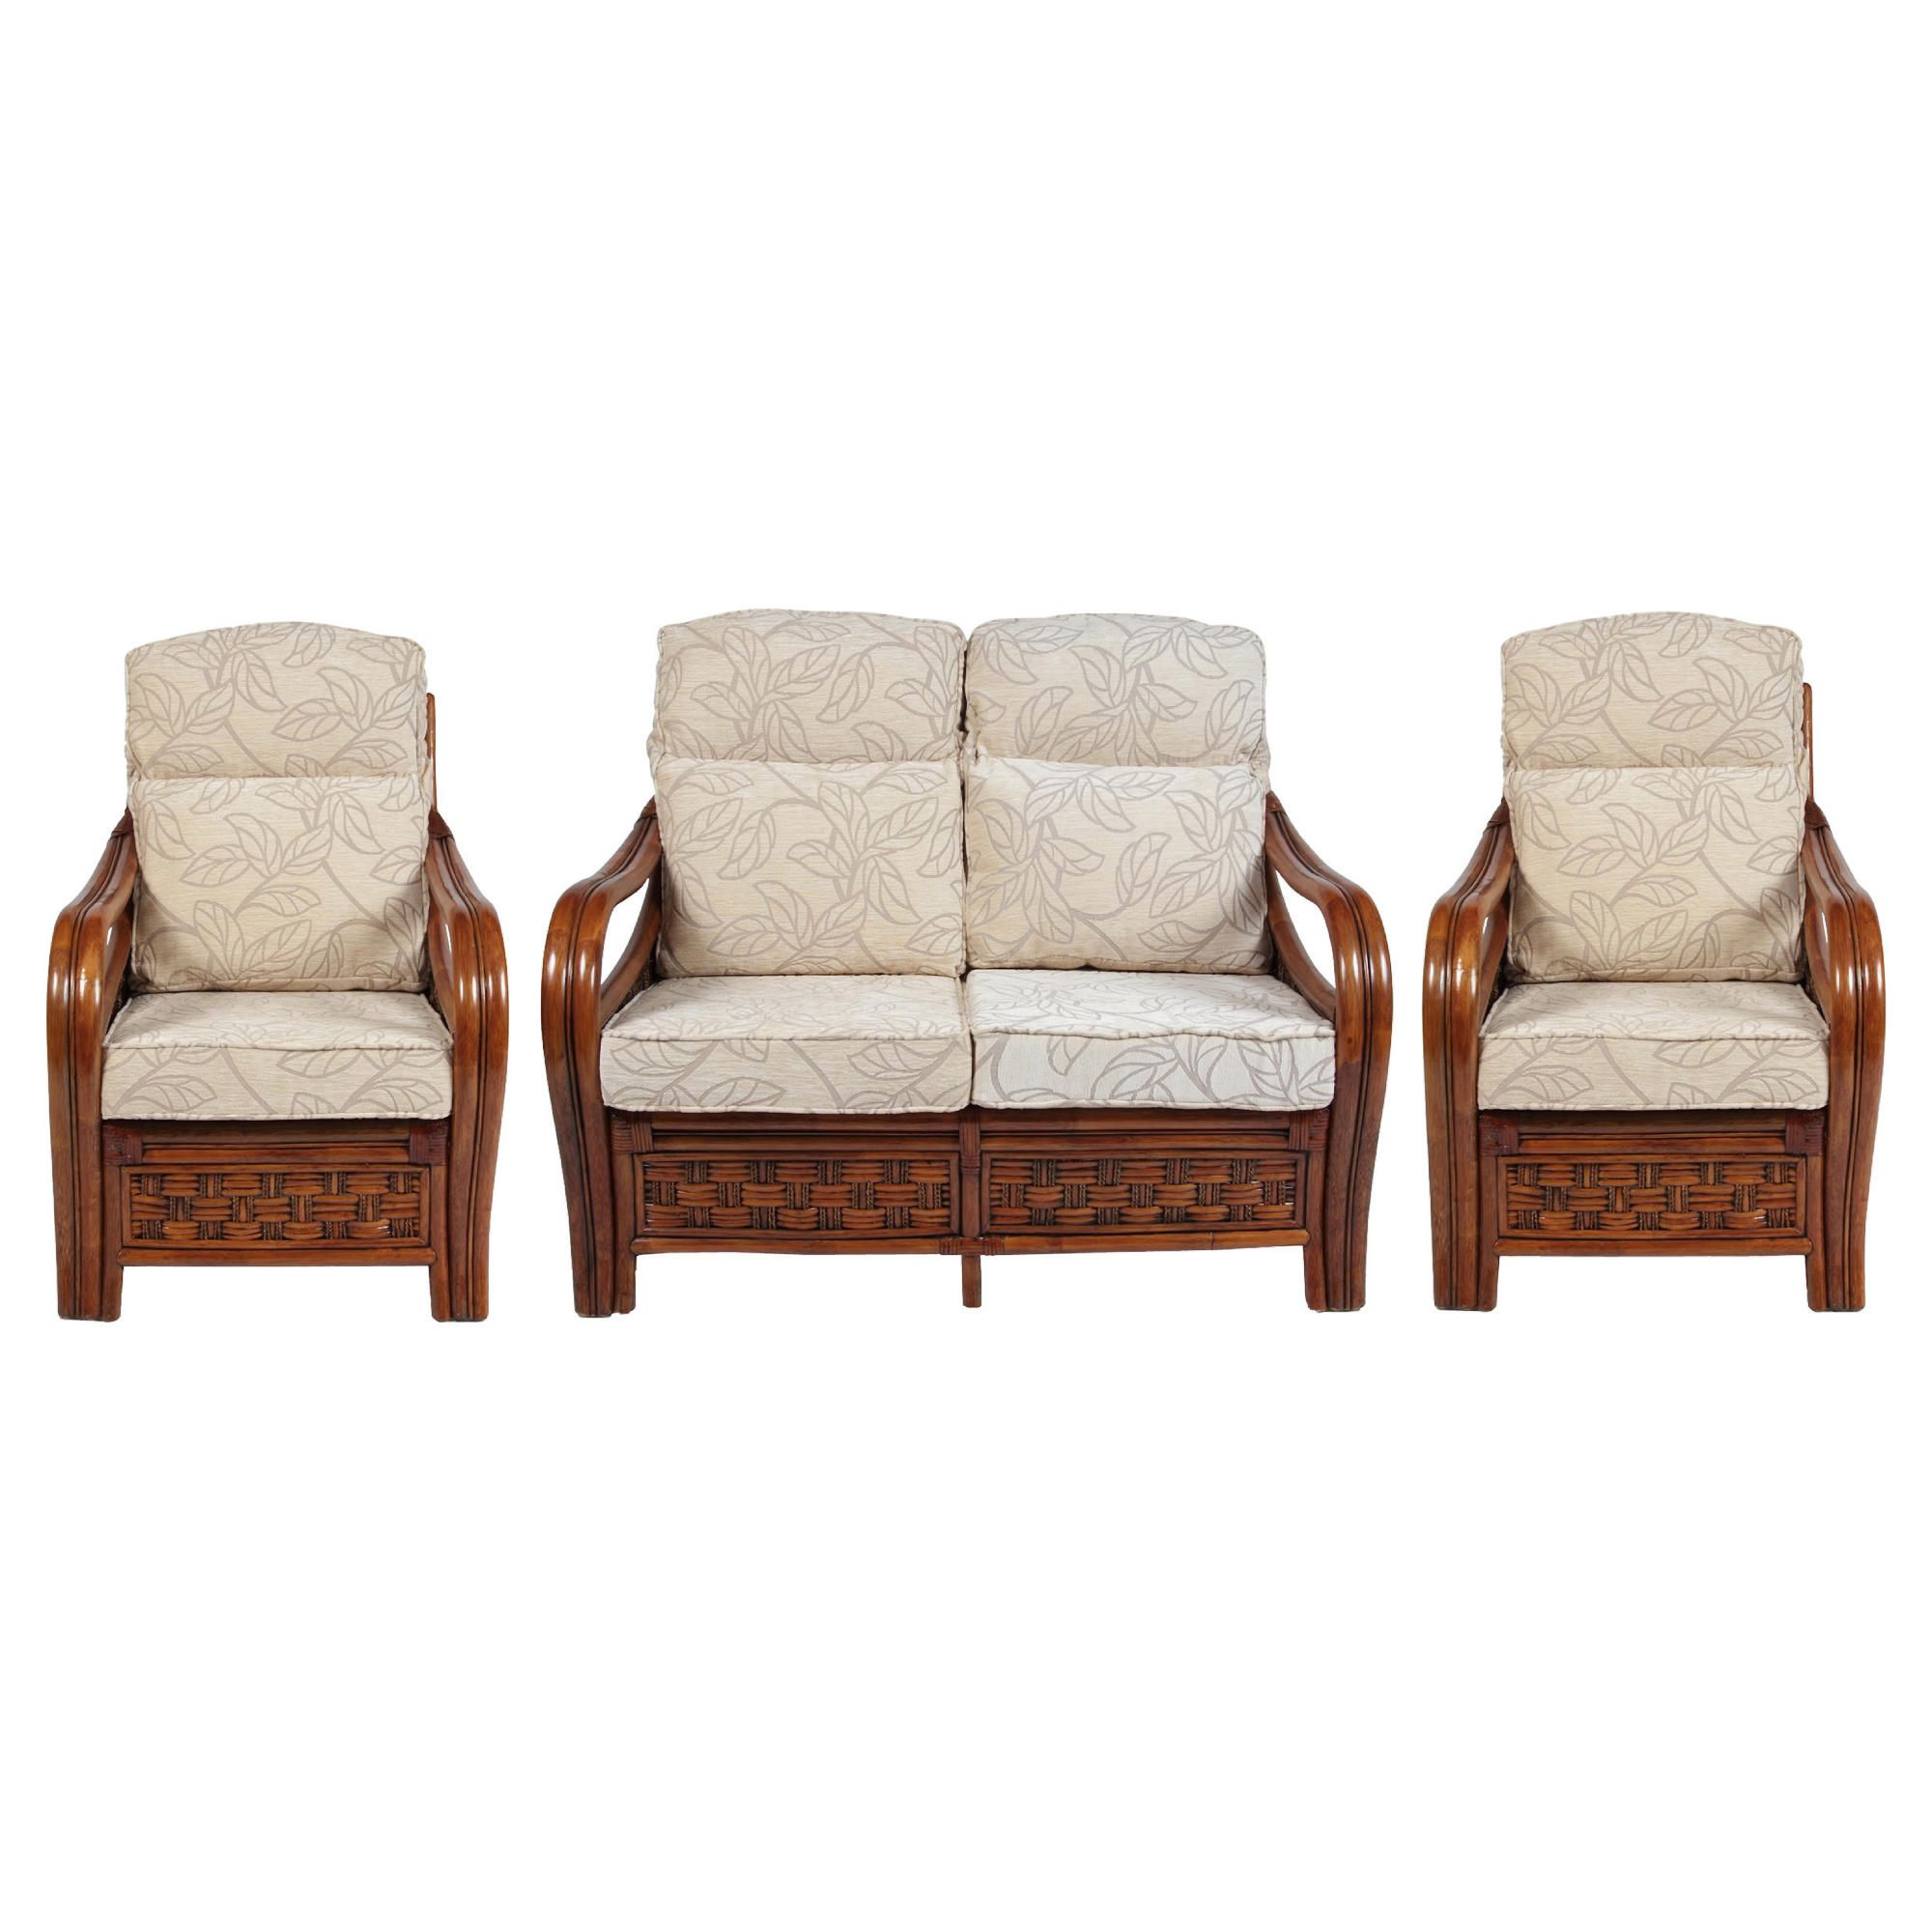 Santiago 3 Piece Suite Conservatory Set (sofa & 2 x chairs) at Tesco Direct